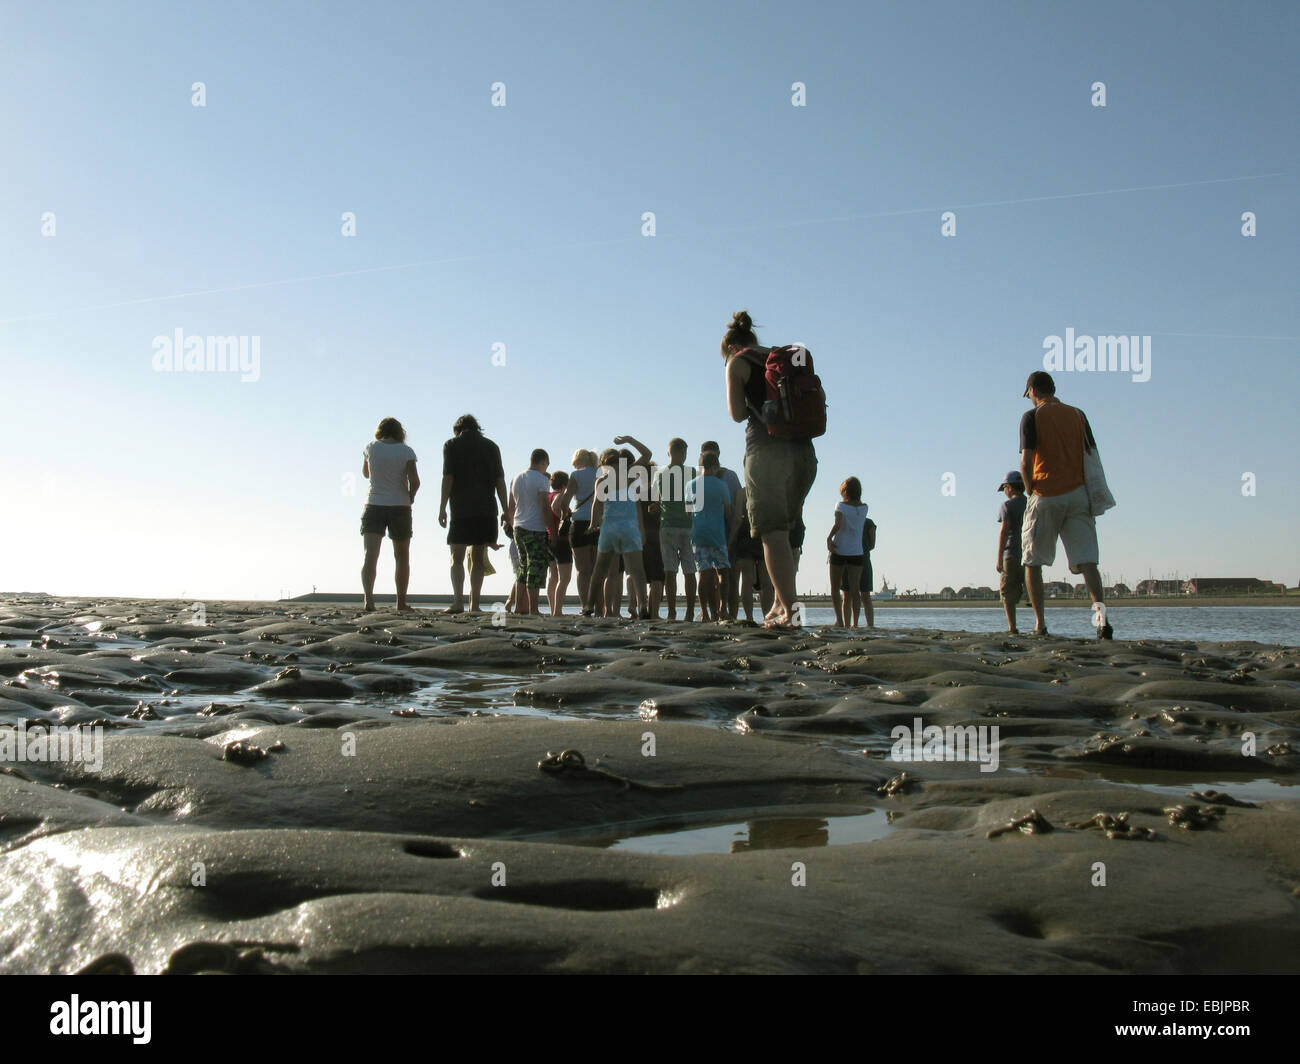 tidal flat hiker during a biological excursion, Germany, Baltrum, Lower Saxony Wadden Sea National Park - Stock Image